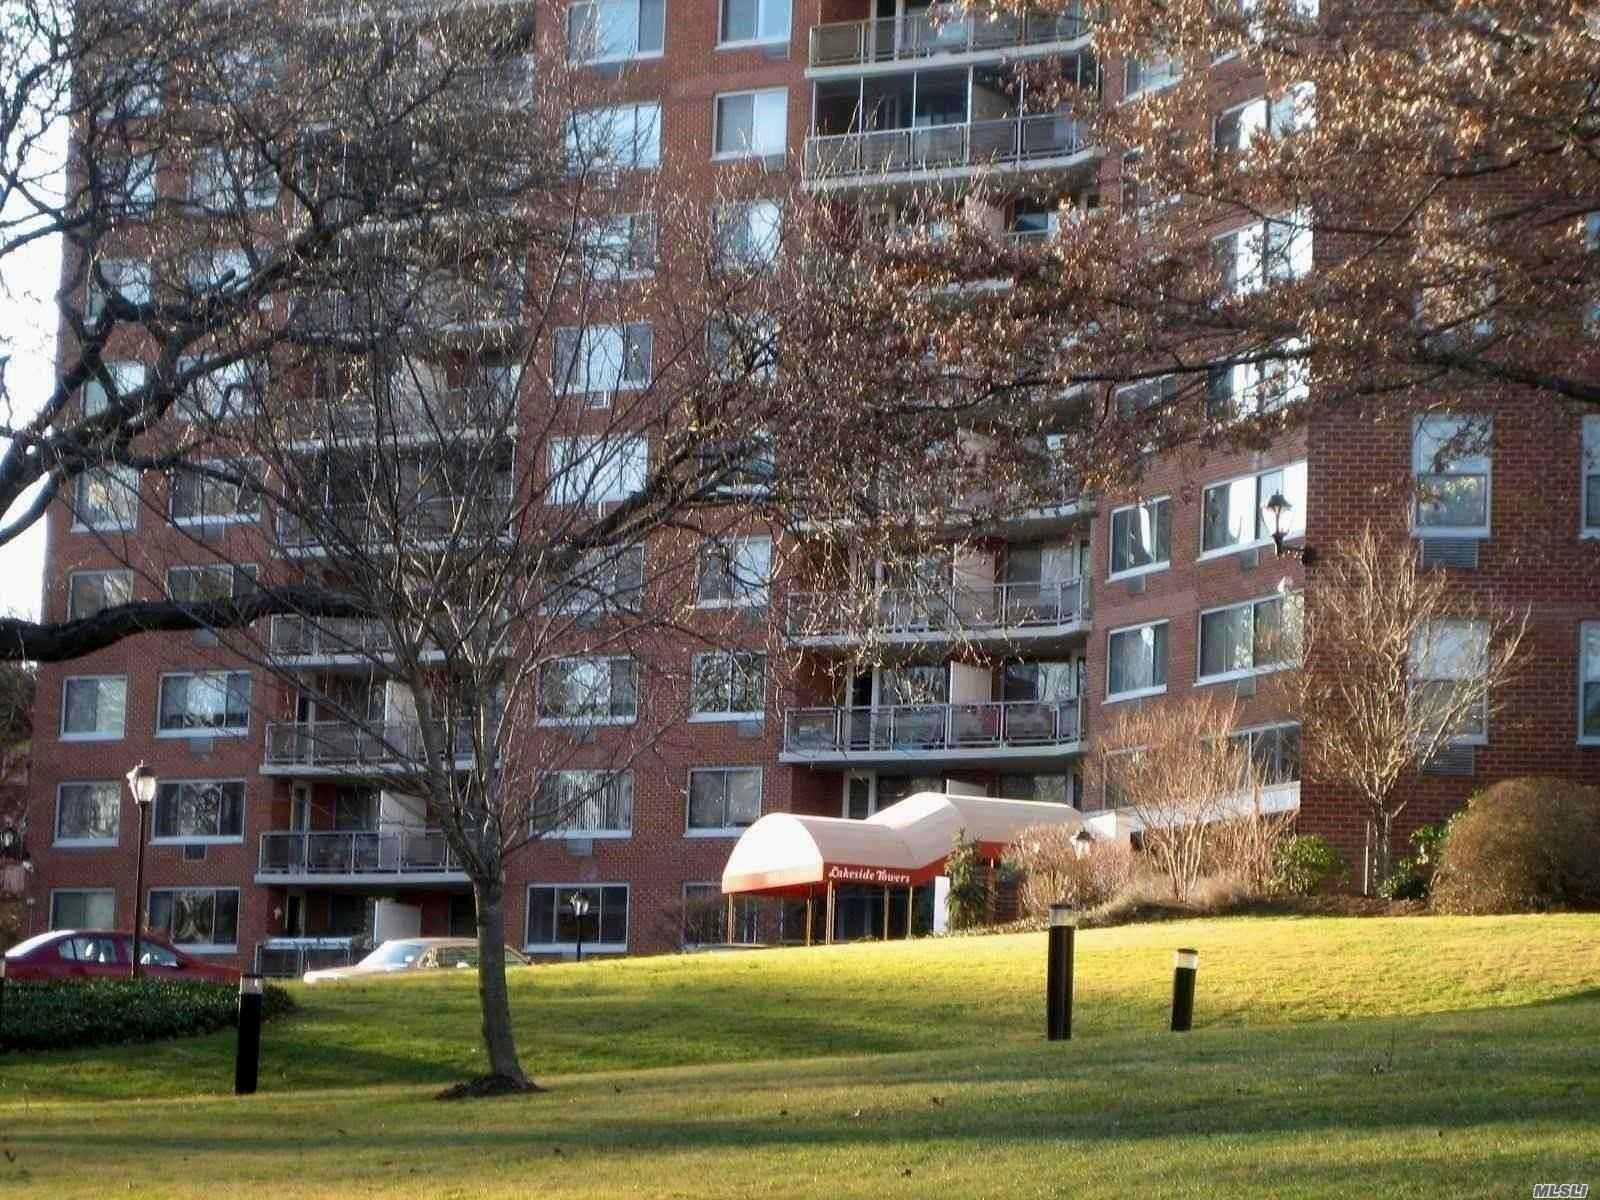 Deluxe Co-Op Building, Large, Bright Sleep Alcove Studio, Renovated Kitchen With Granite Counters, Updated Full Bath, Living/Dining Room, Low Maintenence Incl. All Utilities, Real Estate Tax 24 Hr Doorman. Close To Long Island Rail Road, City/Express Bus , Parkways,  Shops. Southern Exposure With Winter View Of Oakland Lake